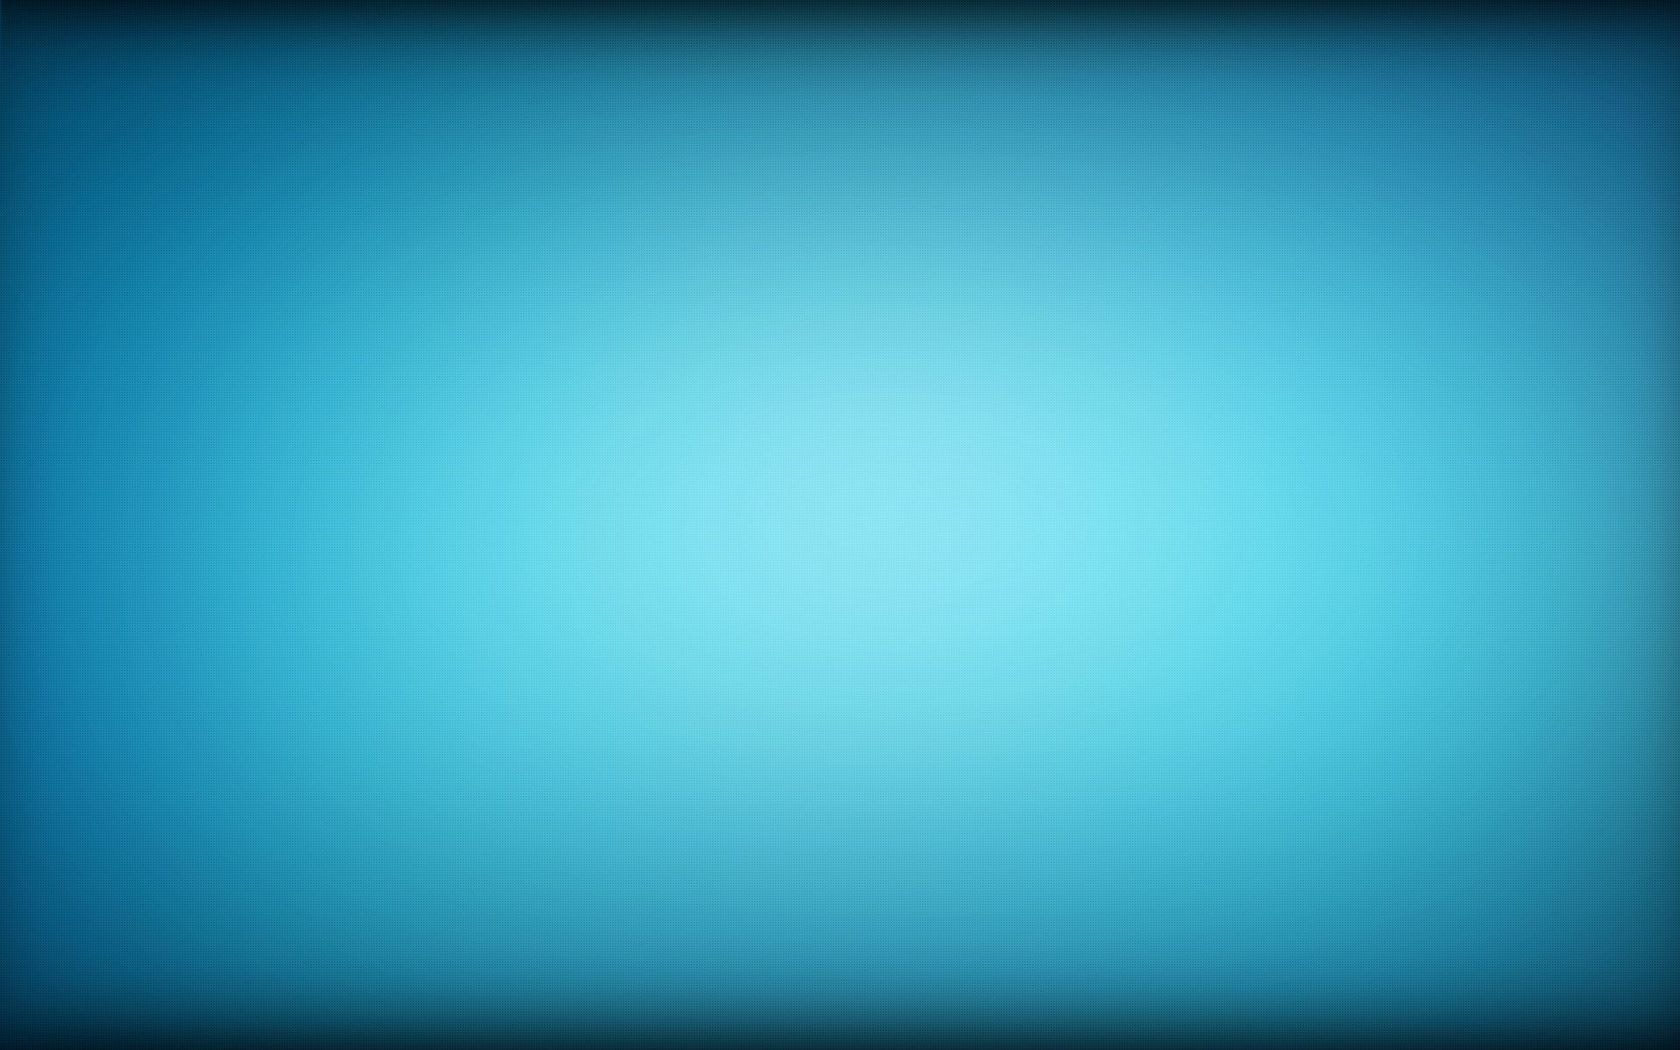 Blue texture wallpaper 13544 1680x1050